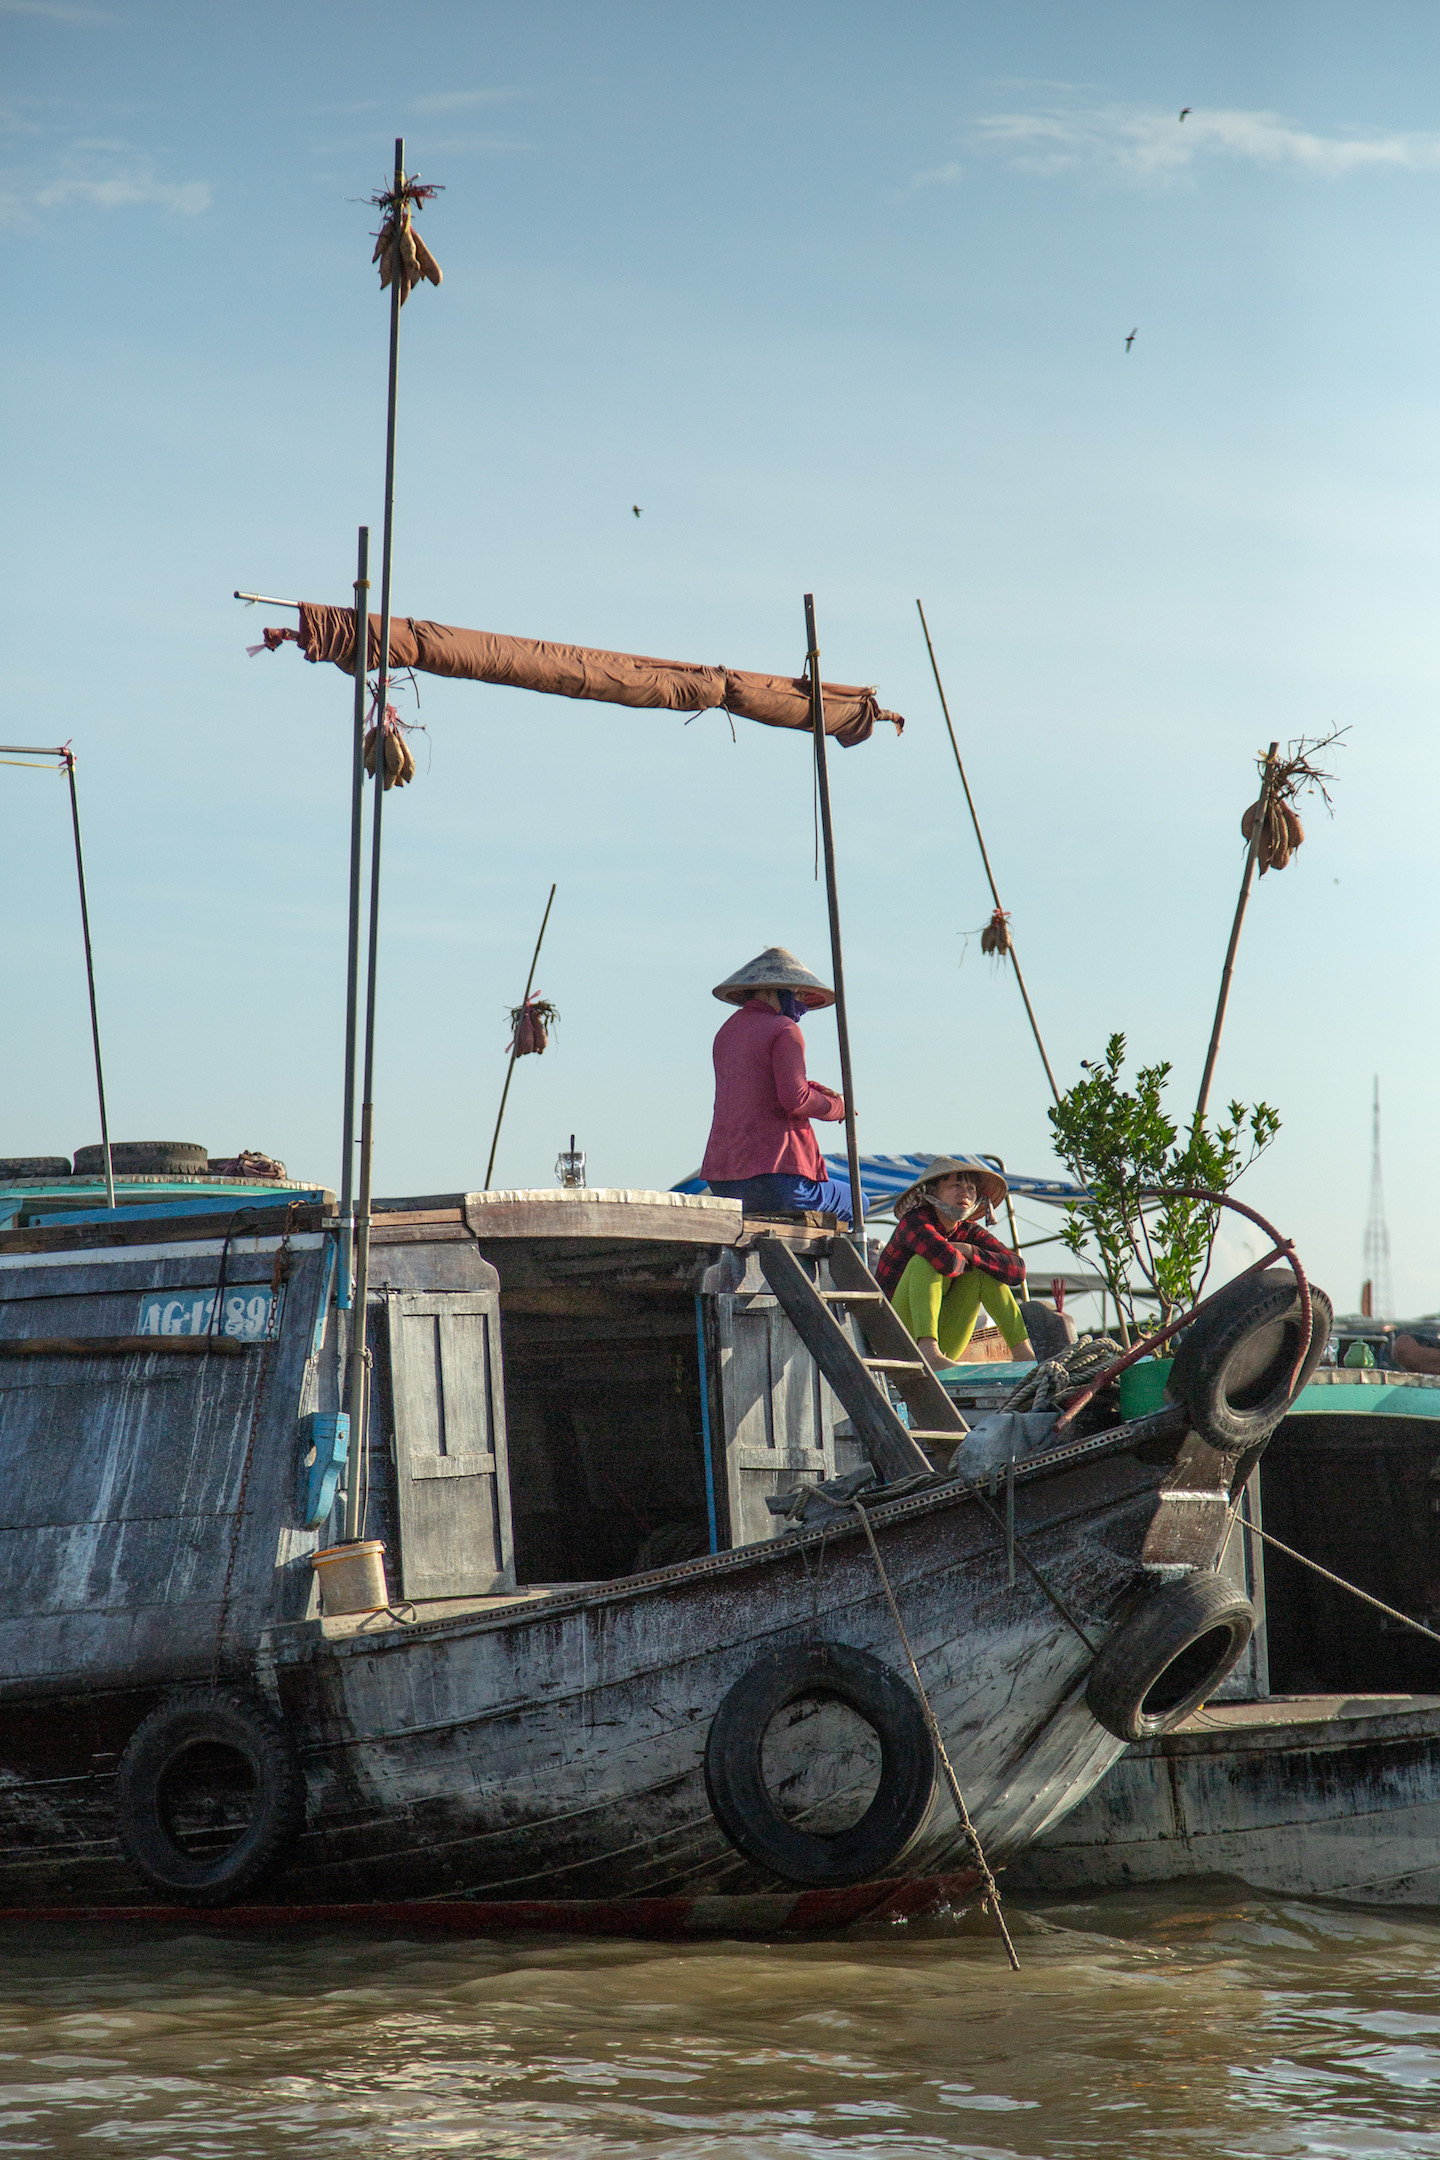 Vendors display their goods atop tall bamboo poles on their boats.